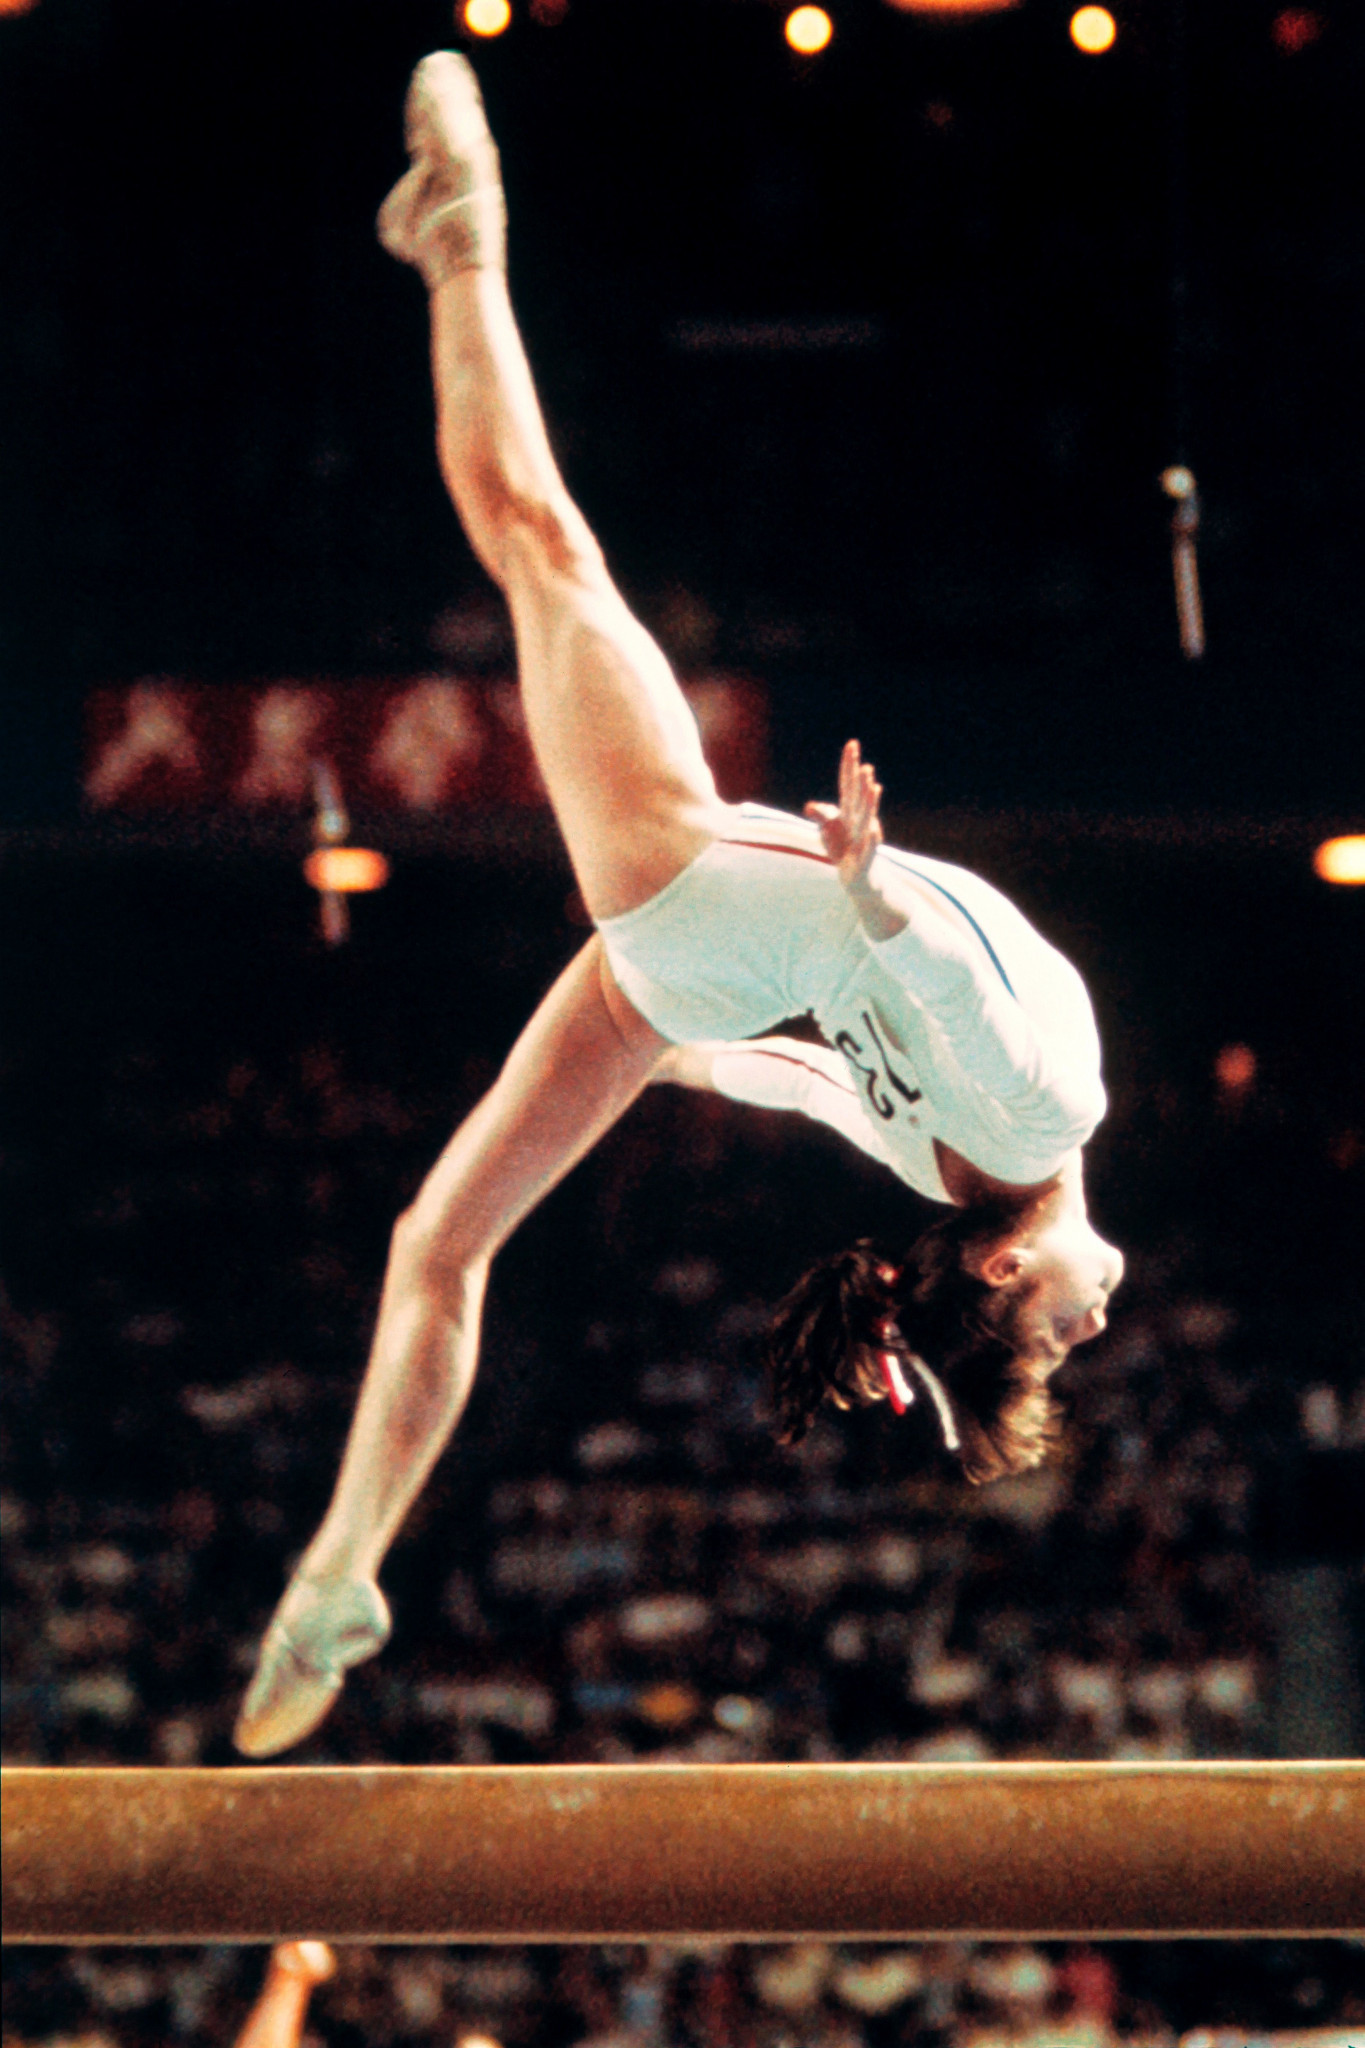 The Montreal Forum was the scene of Nadia Comăneci's astonishing performance at the 1976 Olympics when she won three gold medals and was awarded a perfect 10 five times ©Getty Images